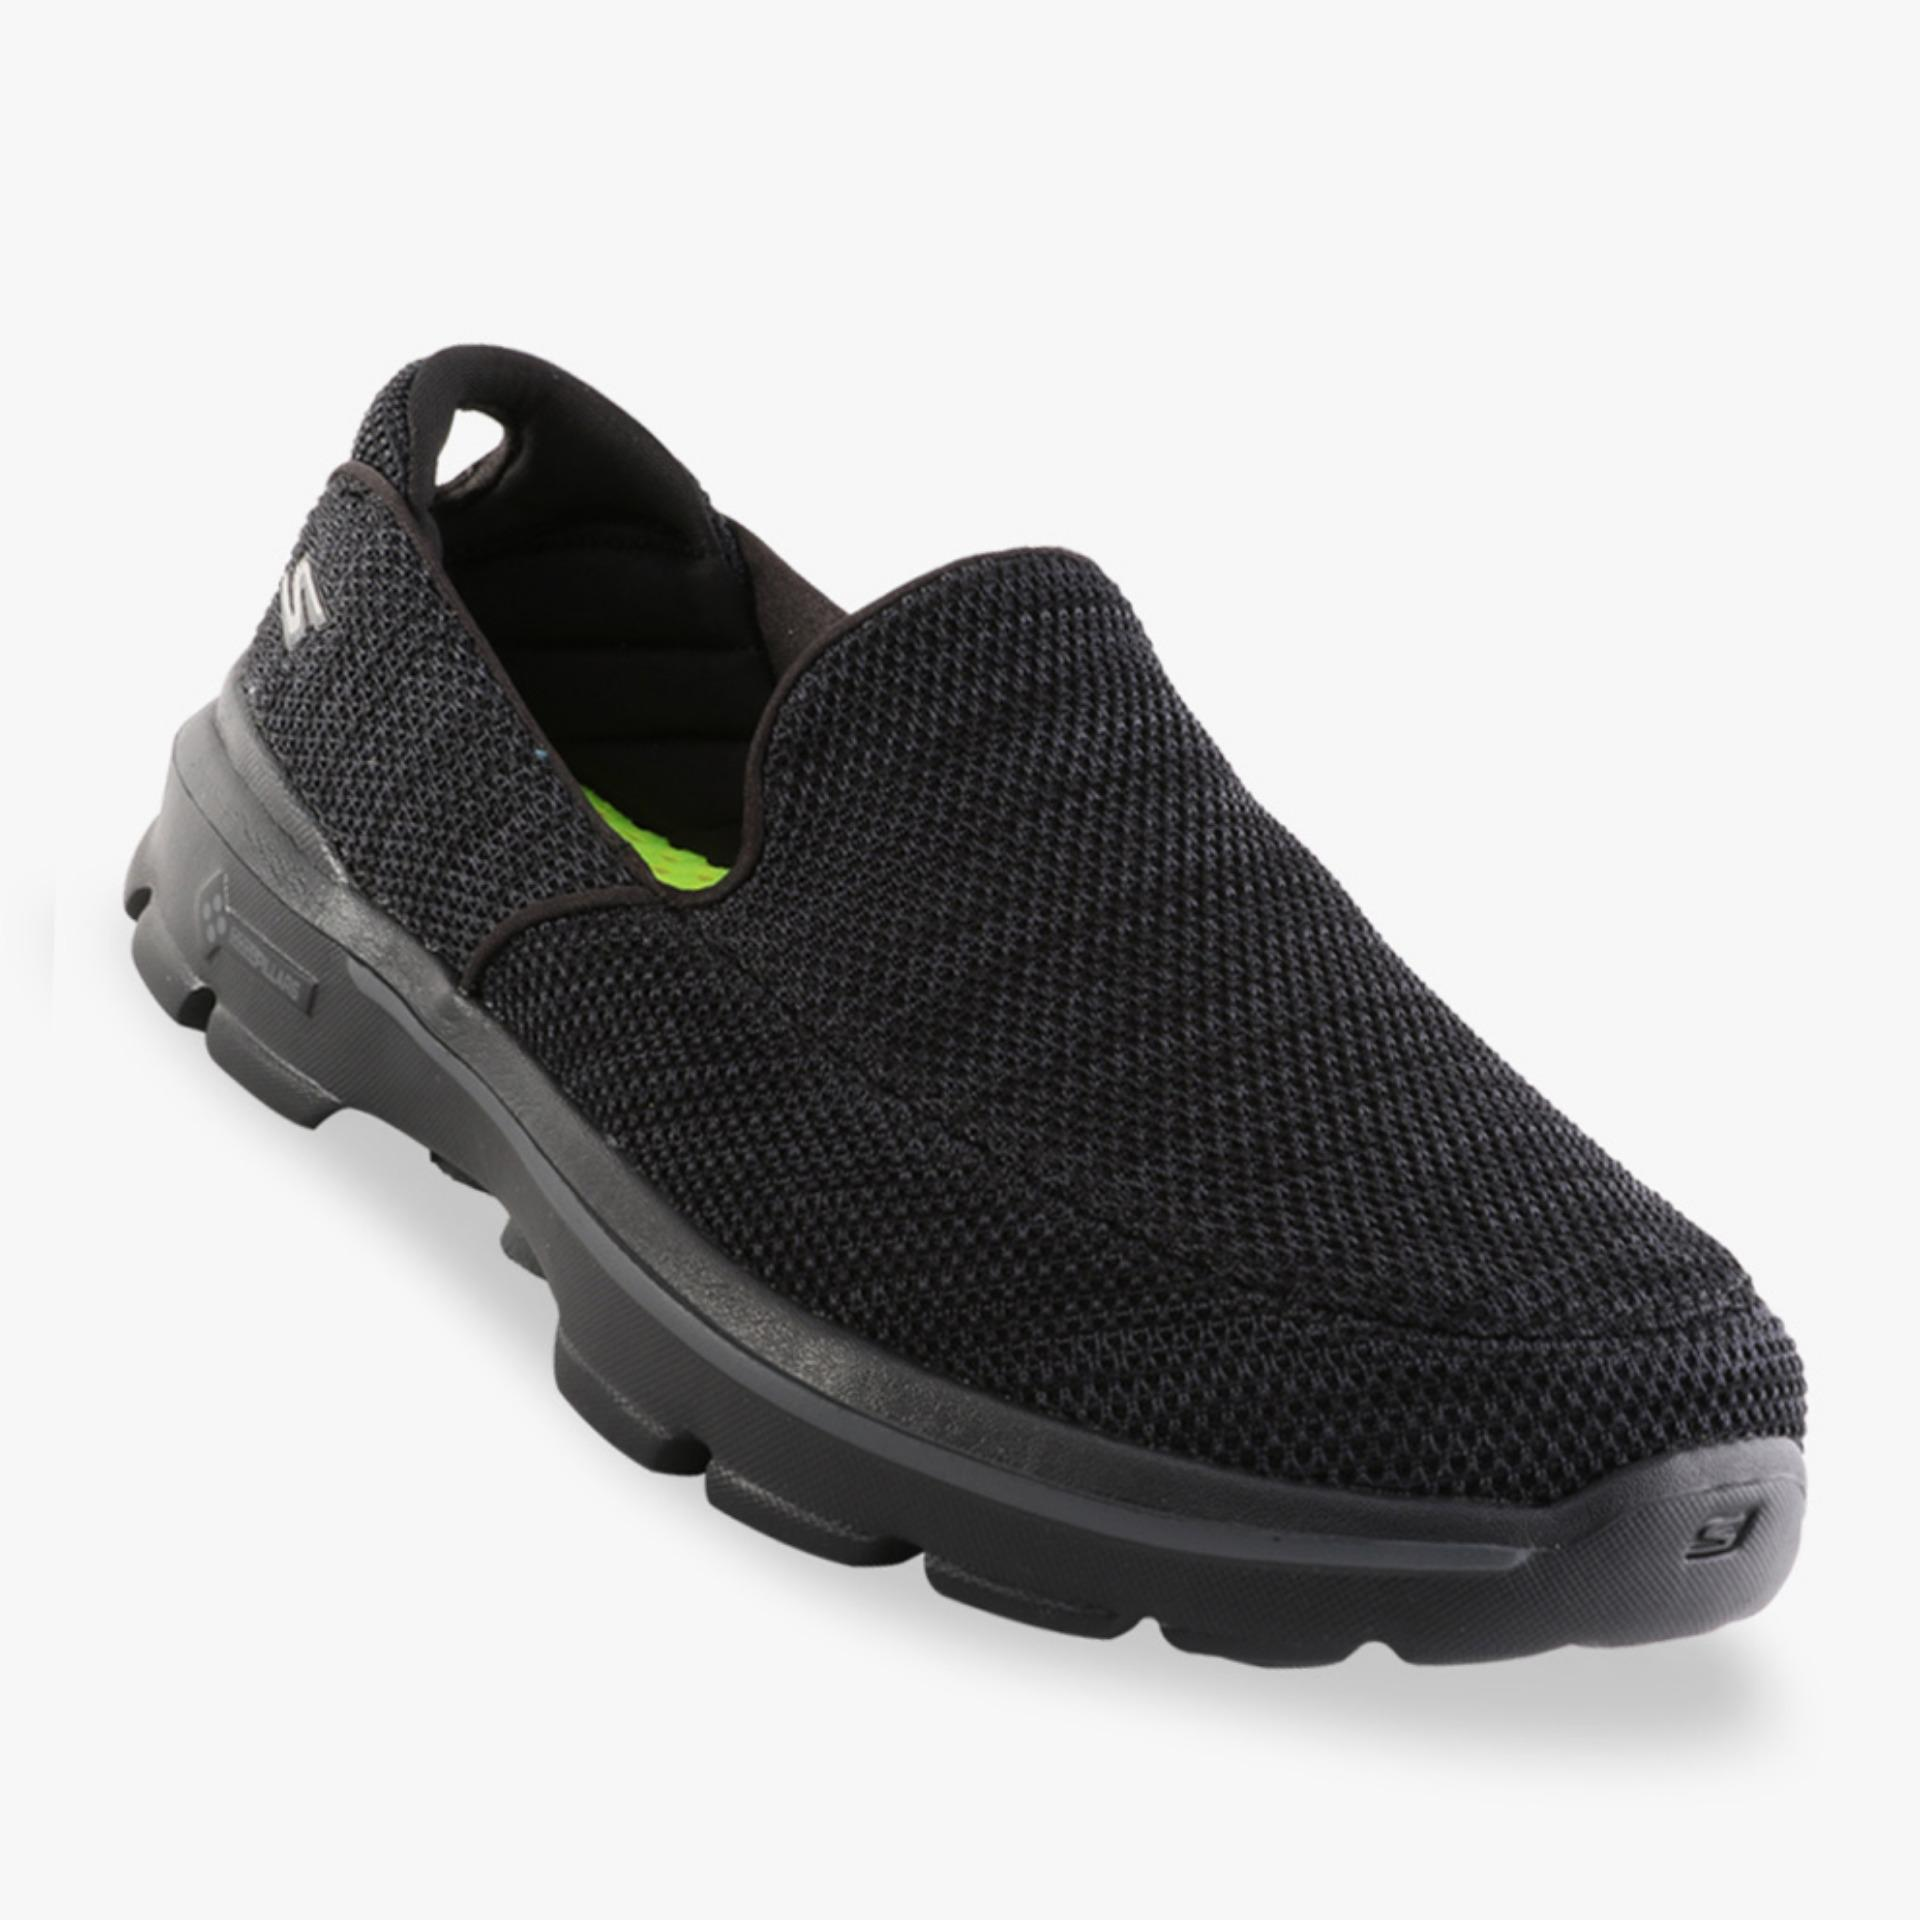 Spek Skechers Gowalk 3 Men S Sneakers Hitam